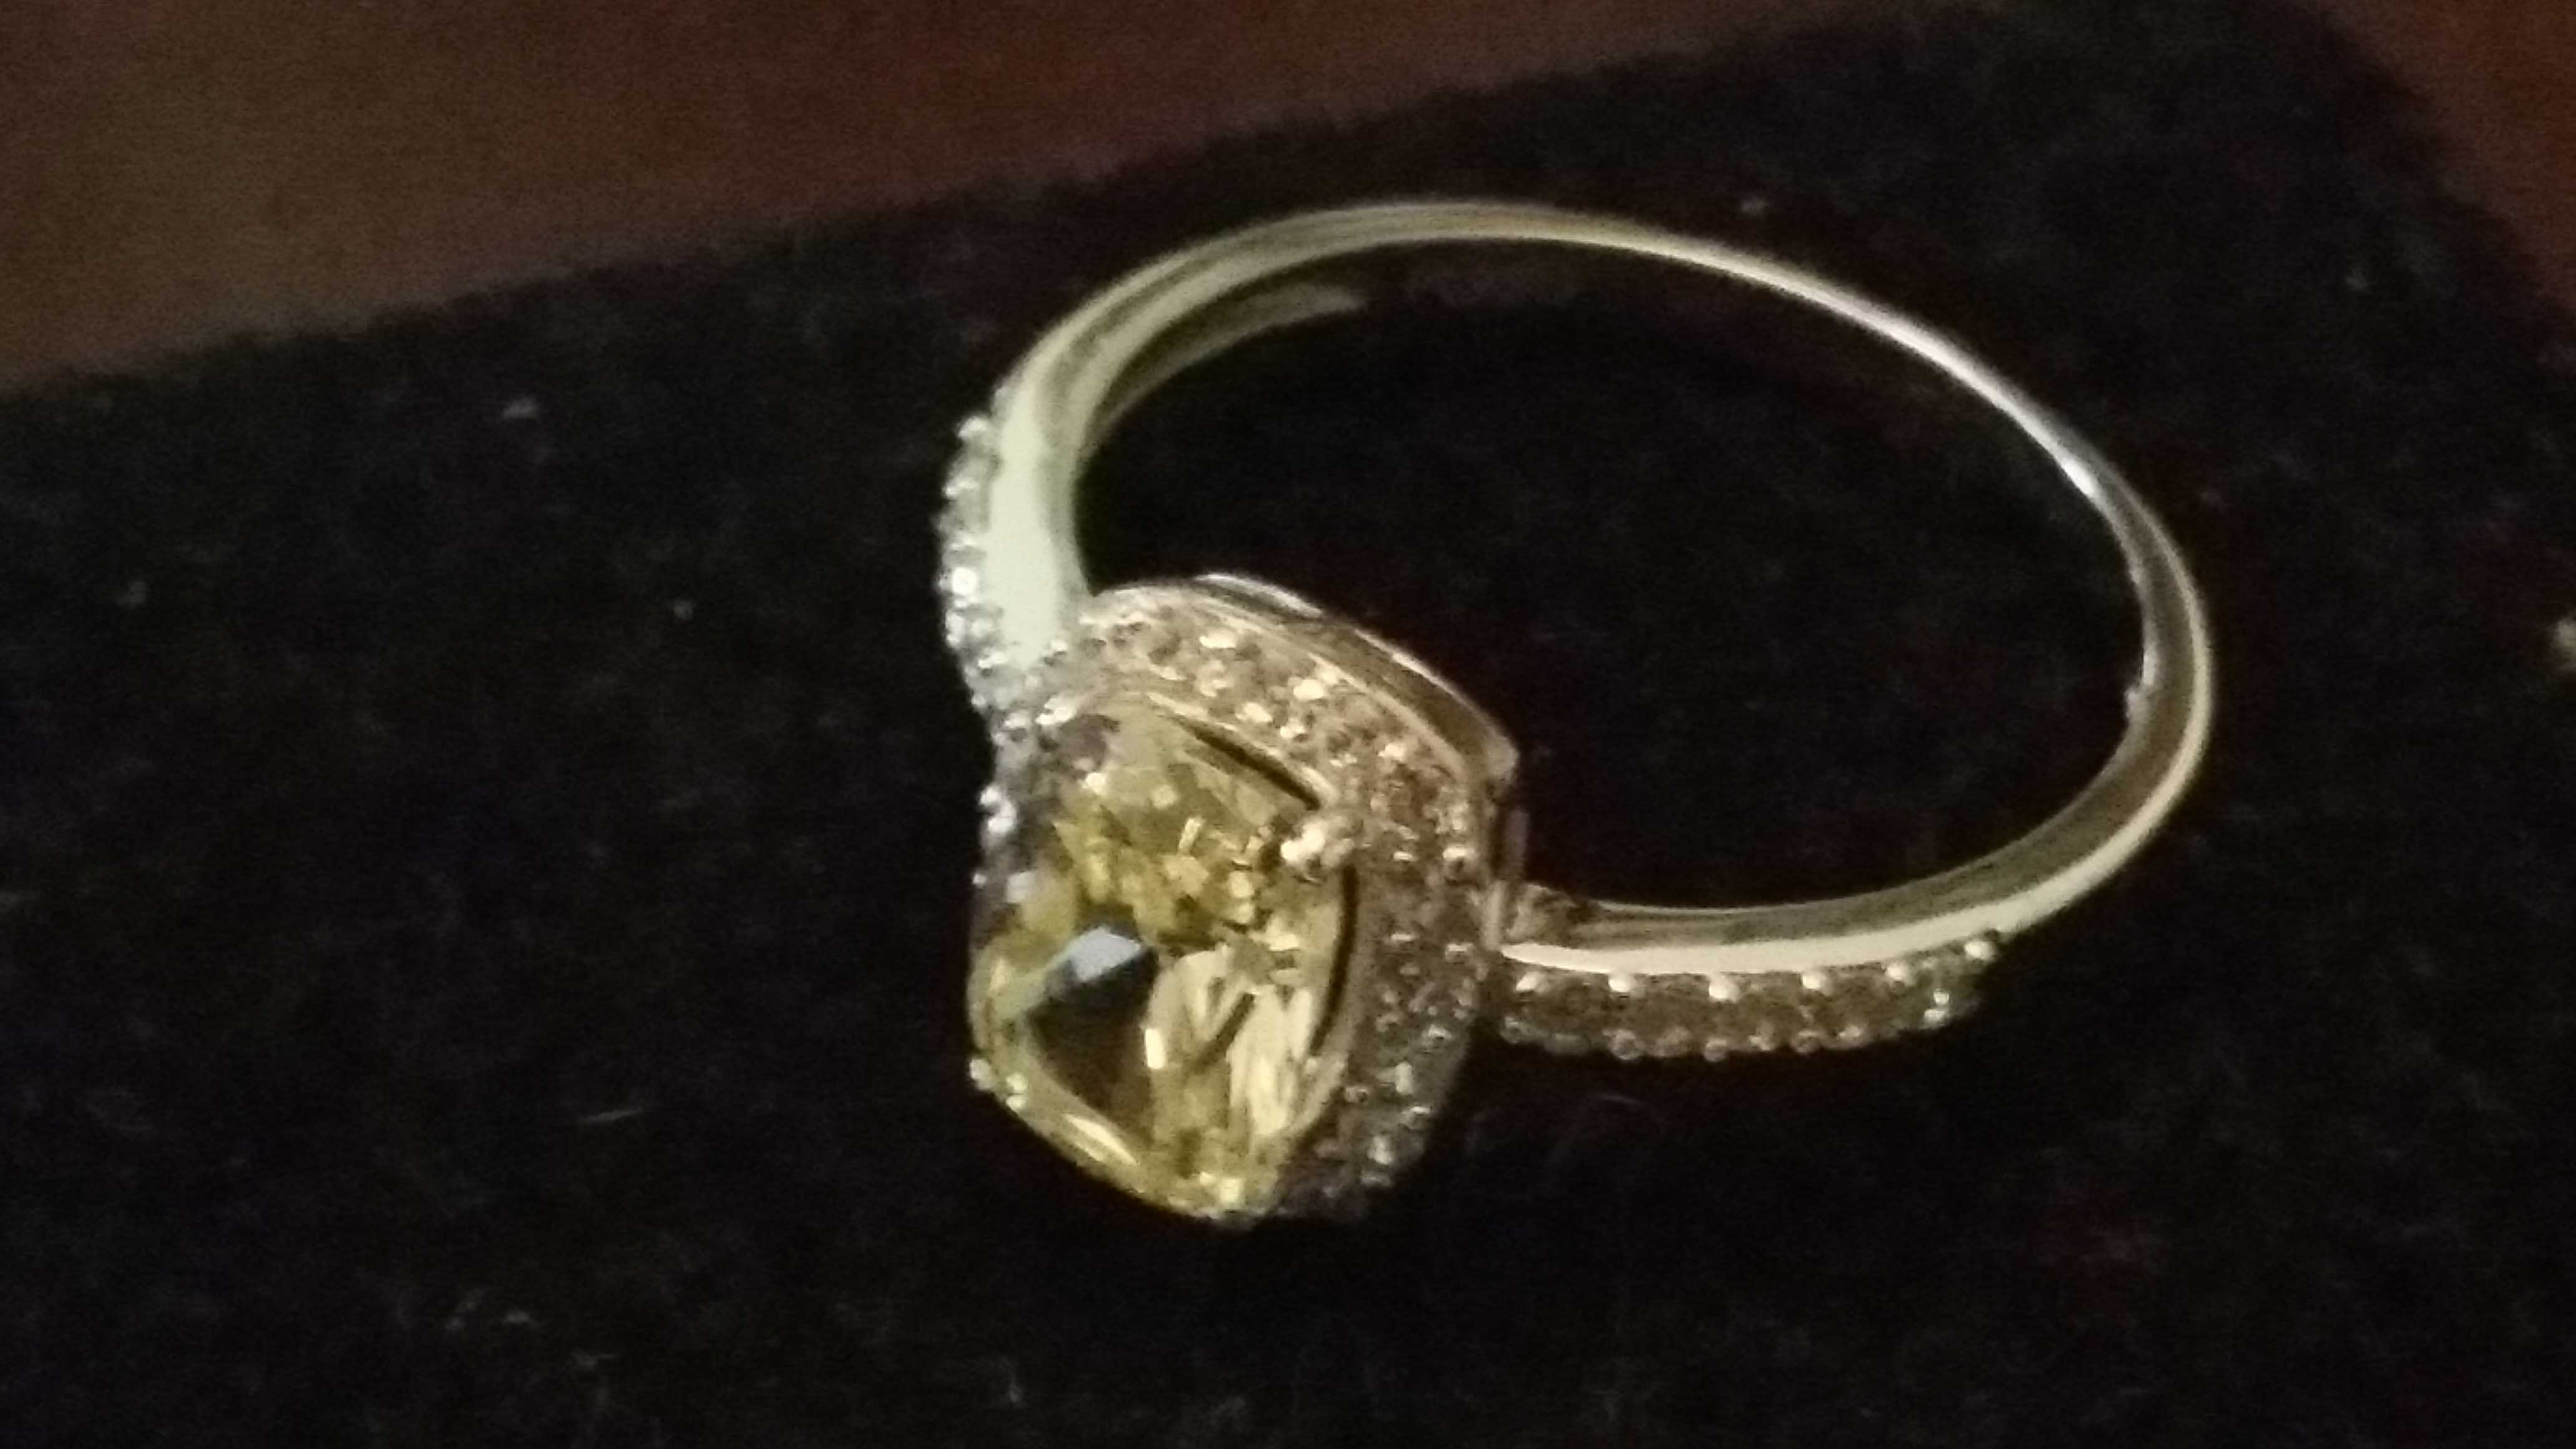 PT950 platinum ring with diamonds